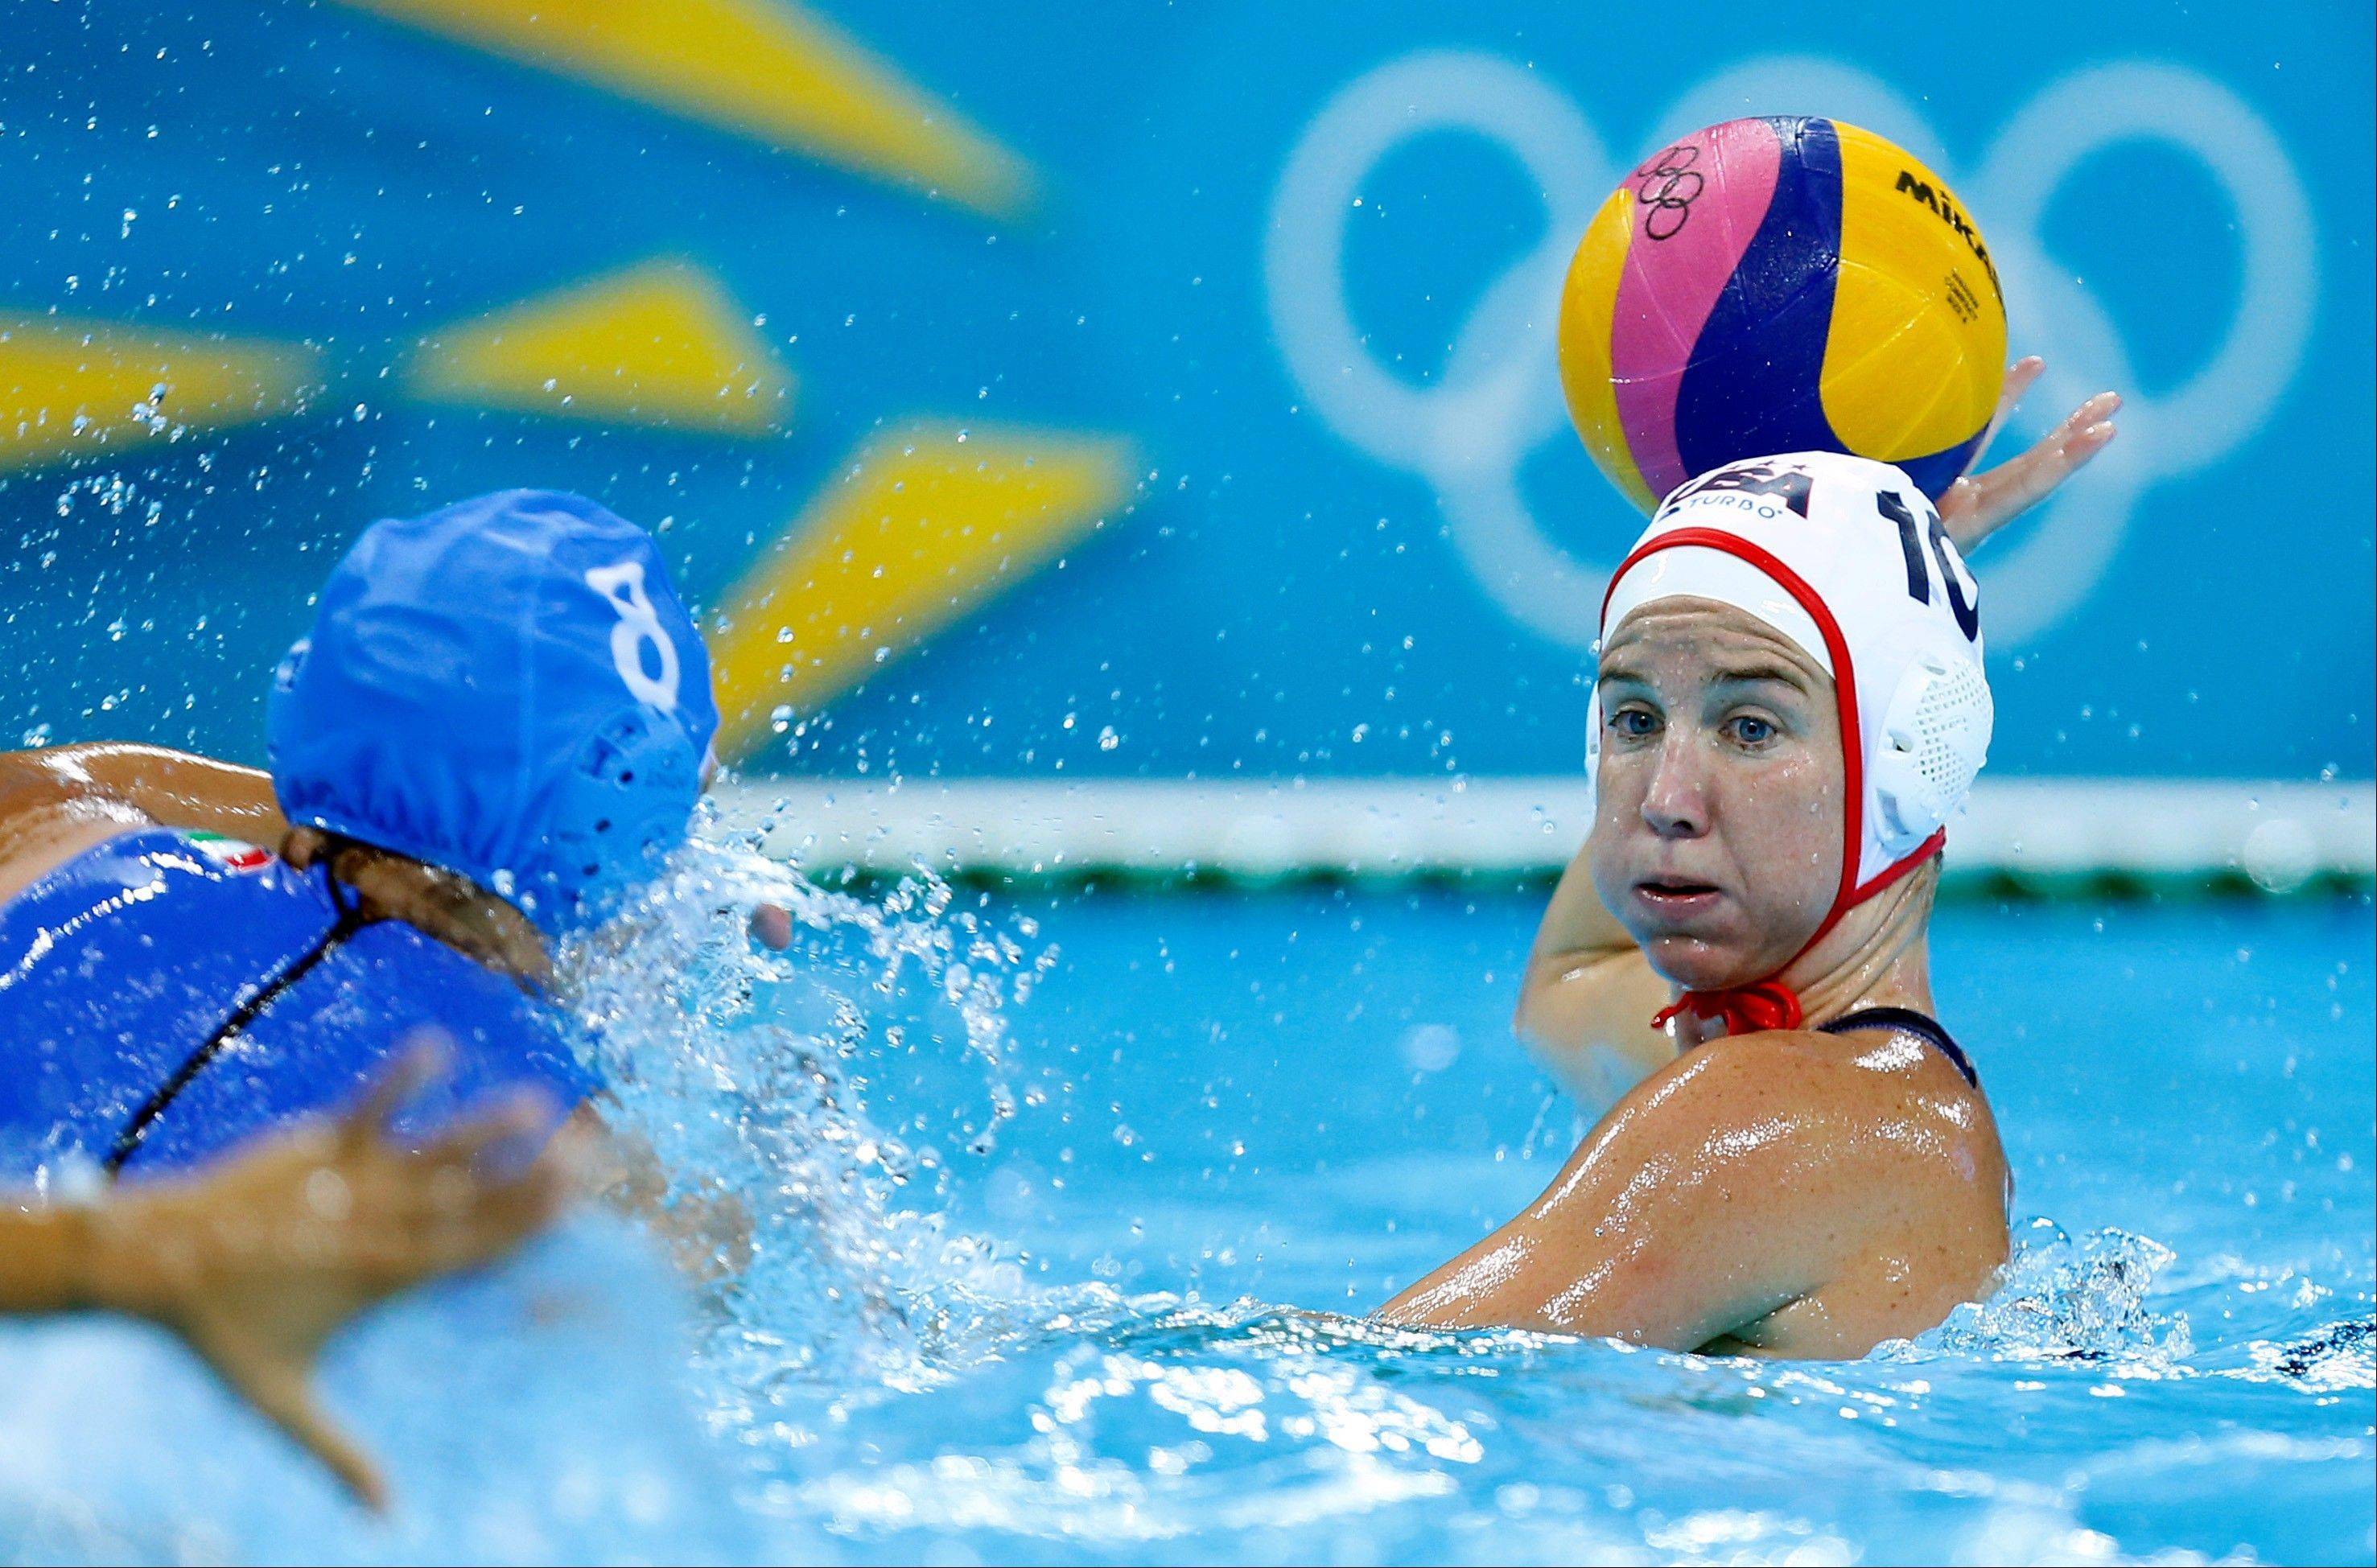 Kelly Rulon of the United States, right looks to pass the ball forward as Roberta Bianconi of Italy moves to block during their women's water polo quarterfinal match at the 2012 Summer Olympics, Sunday, Aug. 5, 2012, in London.